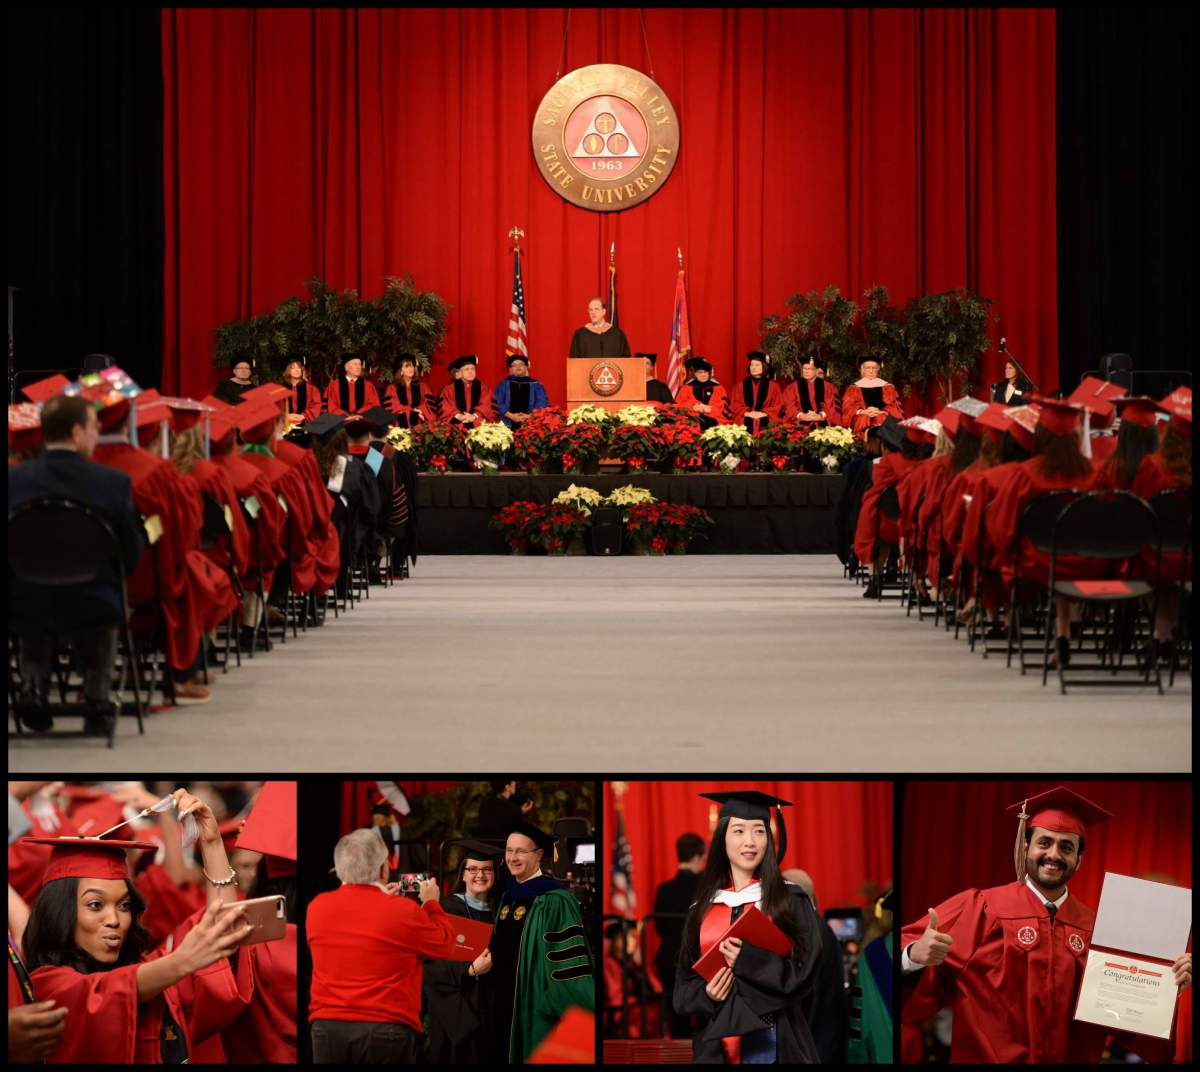 Collage of images from the December 2017 set of commencement ceremonies.